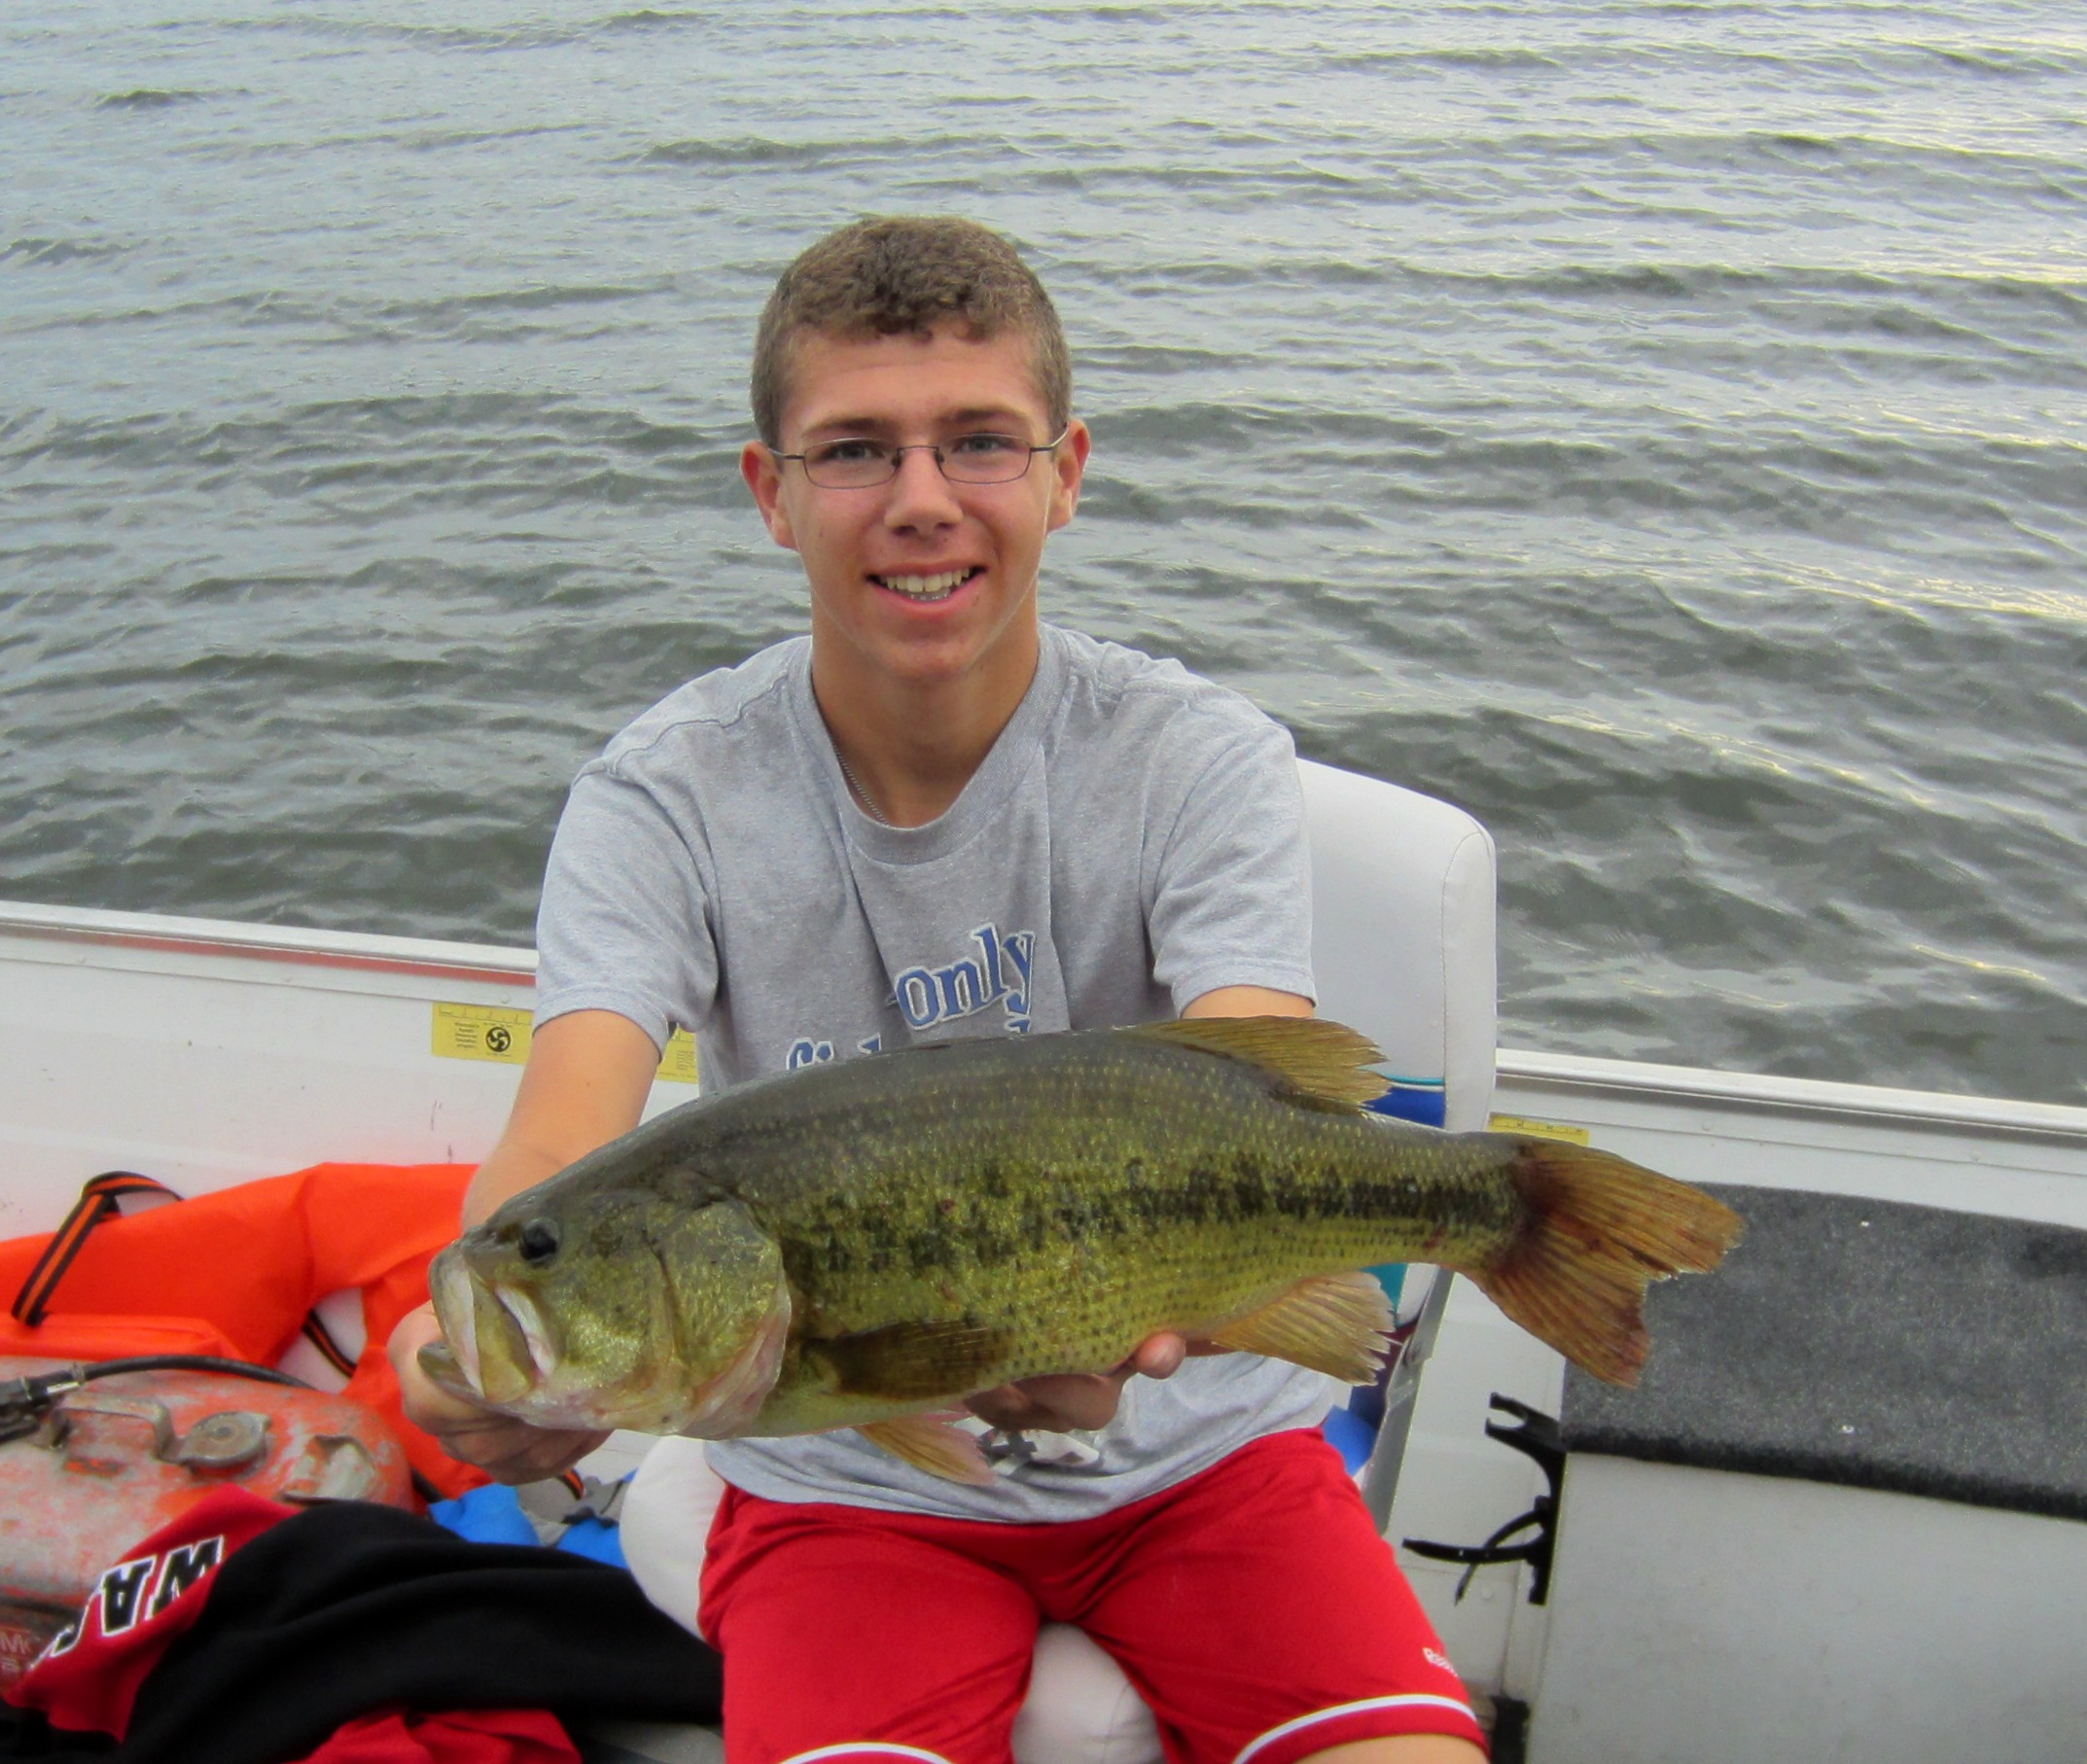 Tom Warren Ham Lake Minnesota   Species: Largemouth Bass Date Caught: 08/11/24 Kept / Released: